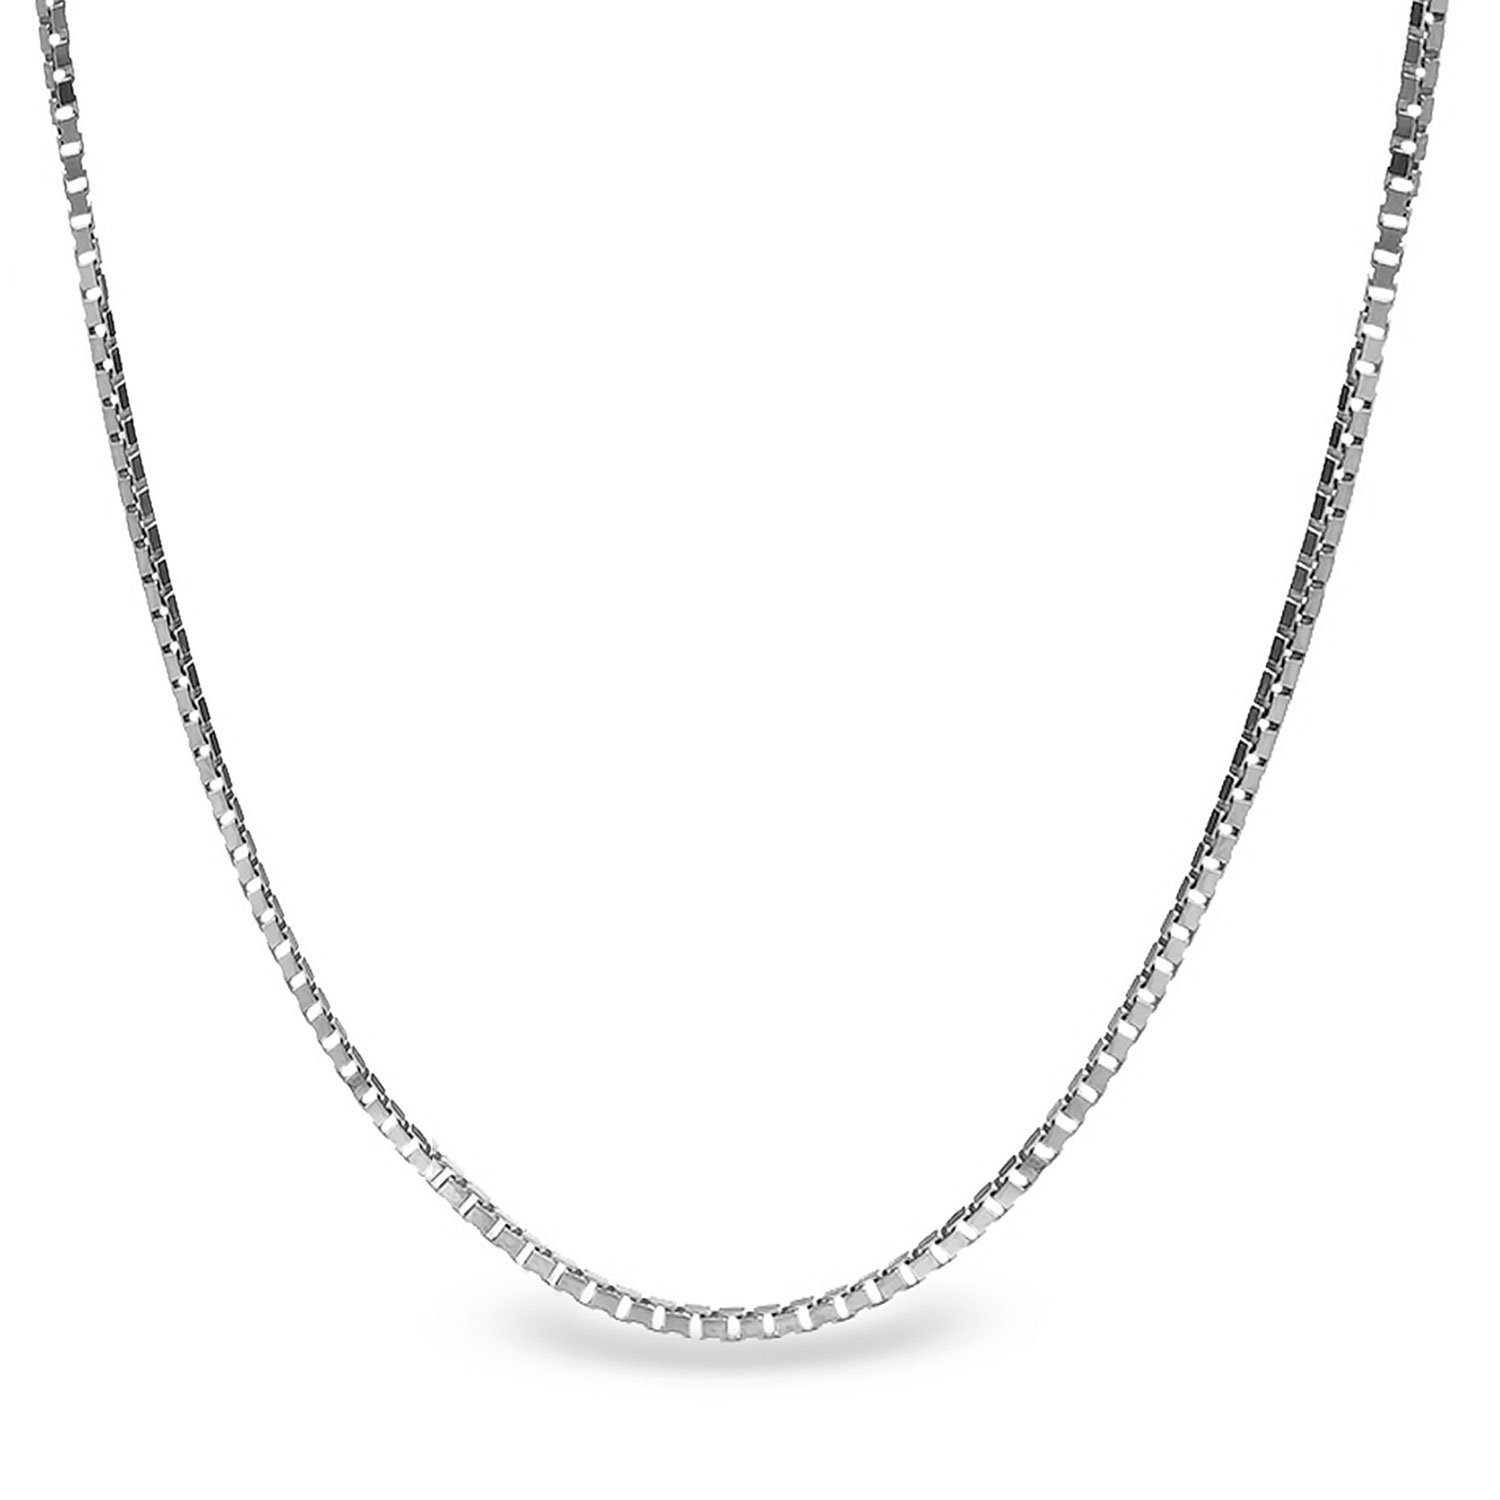 Box Chain 14k White Gold Necklace - 20 in.